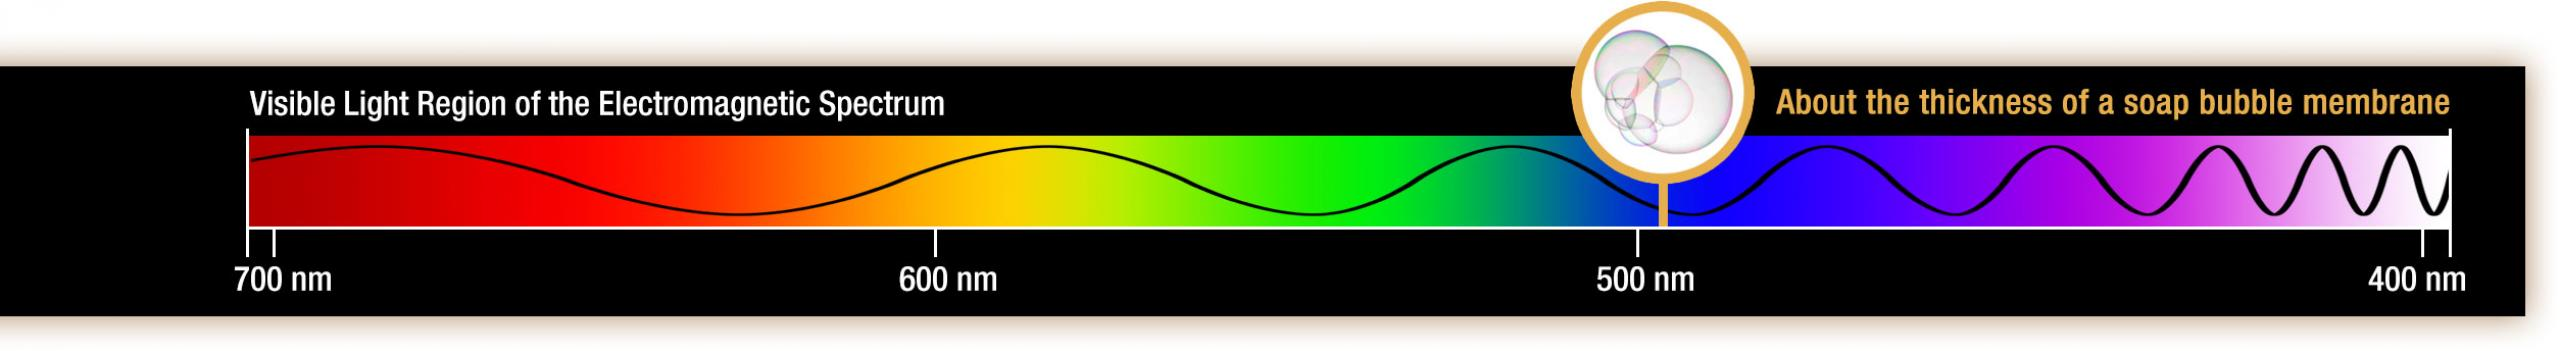 Illustration of a visible wave on the electromagnetic spectrum